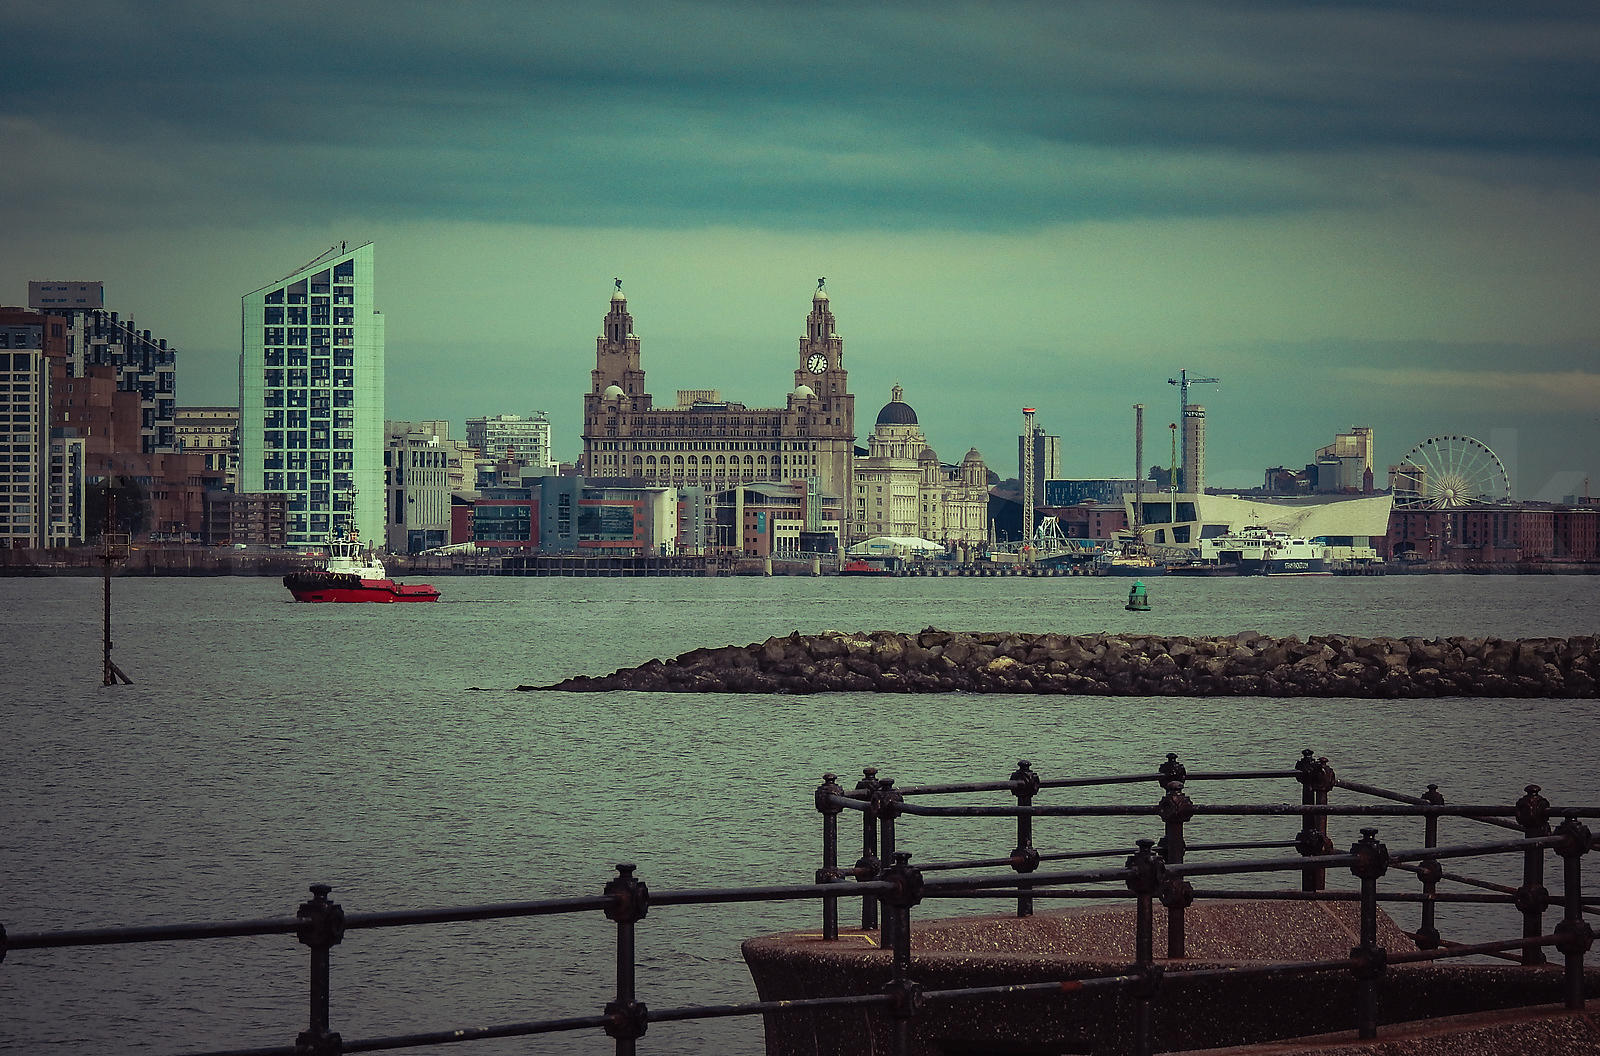 Pier Head, Liverpool (UK)